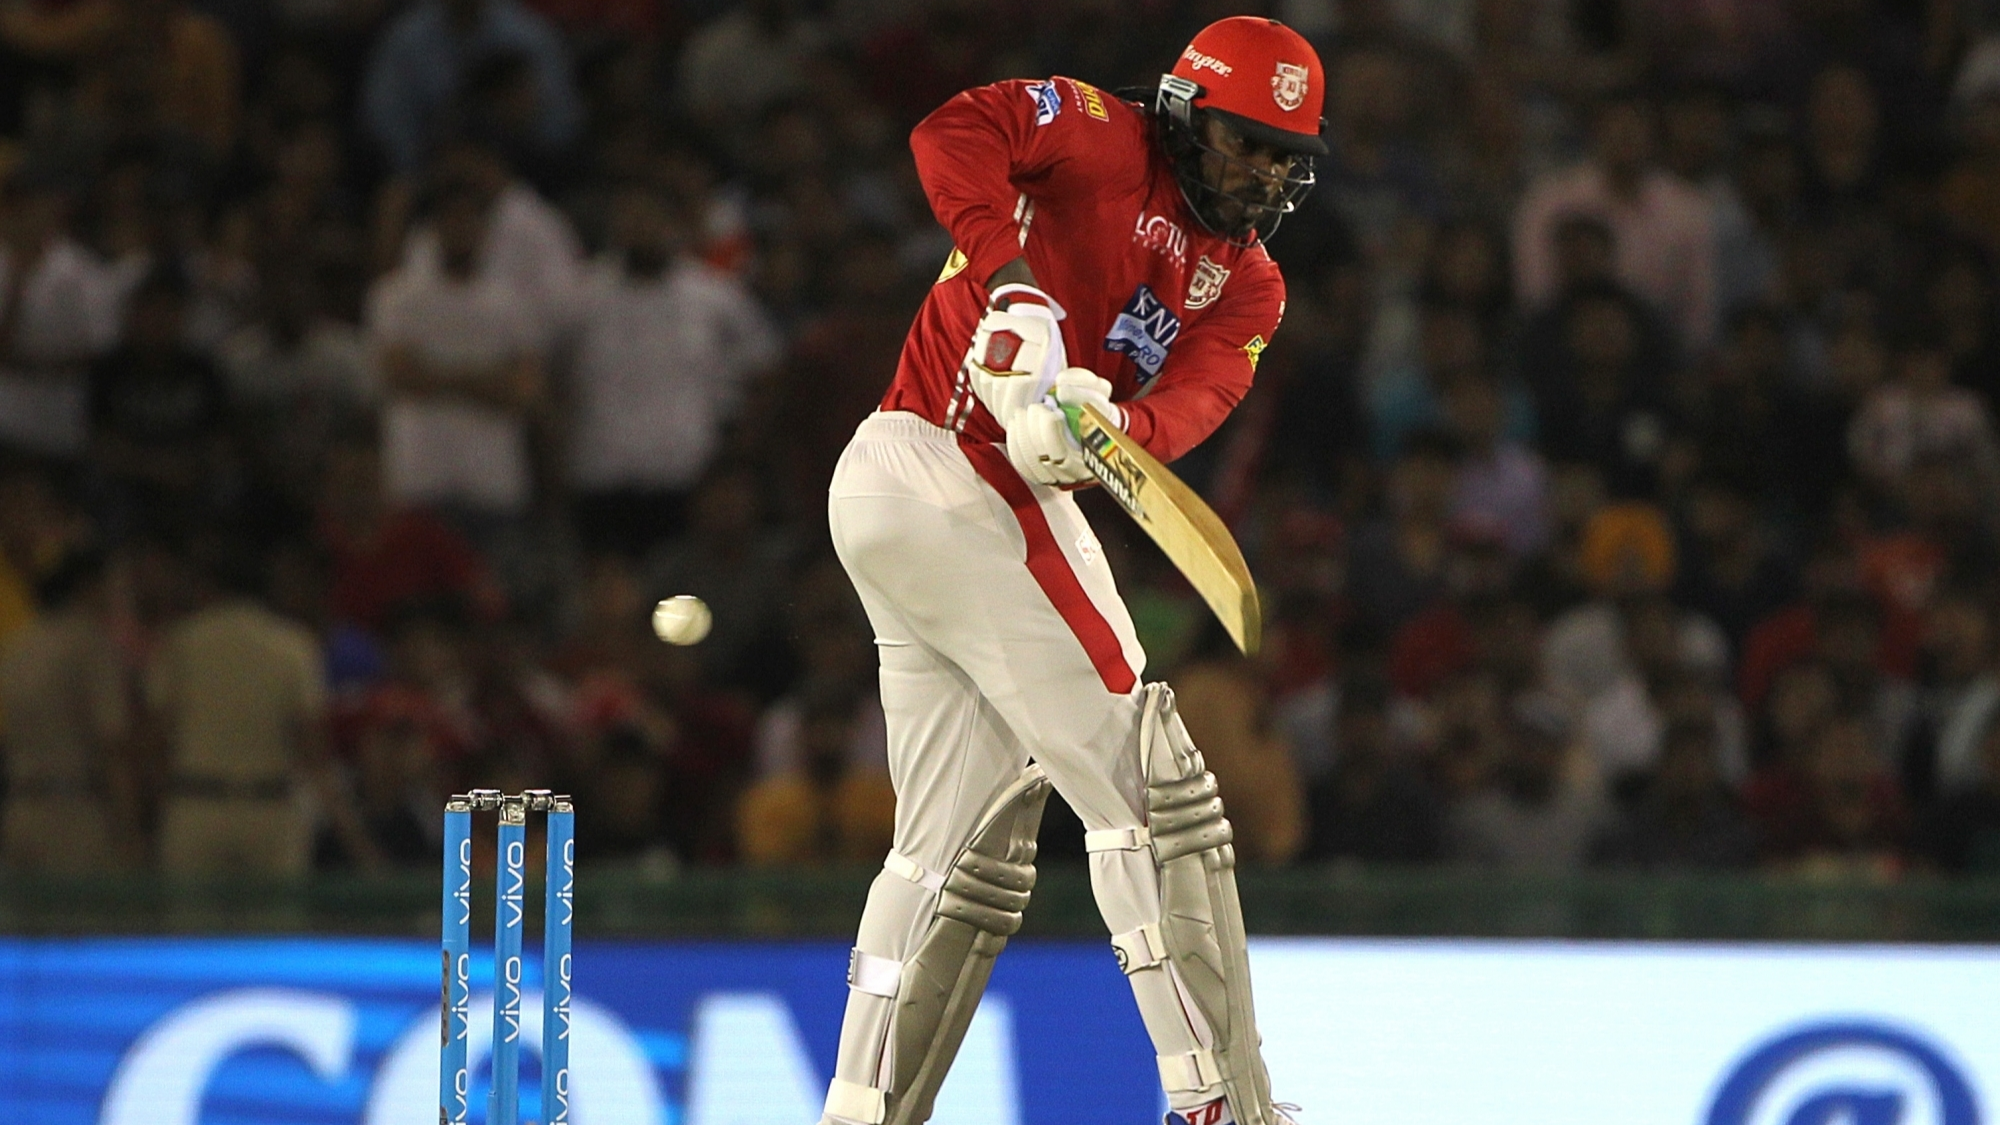 IPL 2018: Chris Gayle's 50 takes KXIP to 174/6 against Mumbai Indians